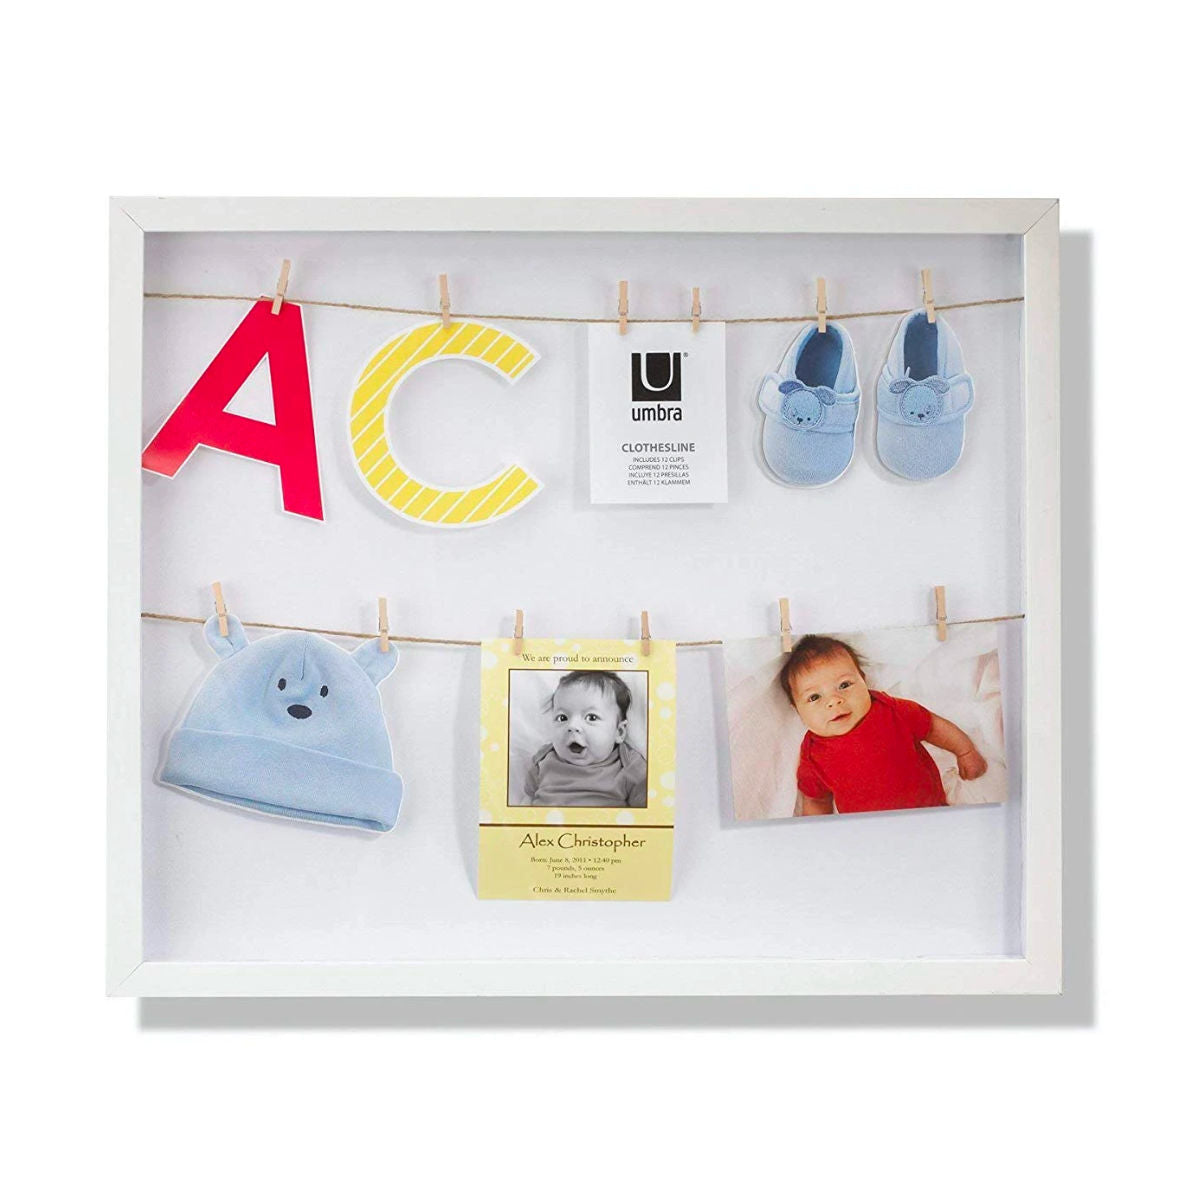 Umbra Clothesline Photo Frame, white